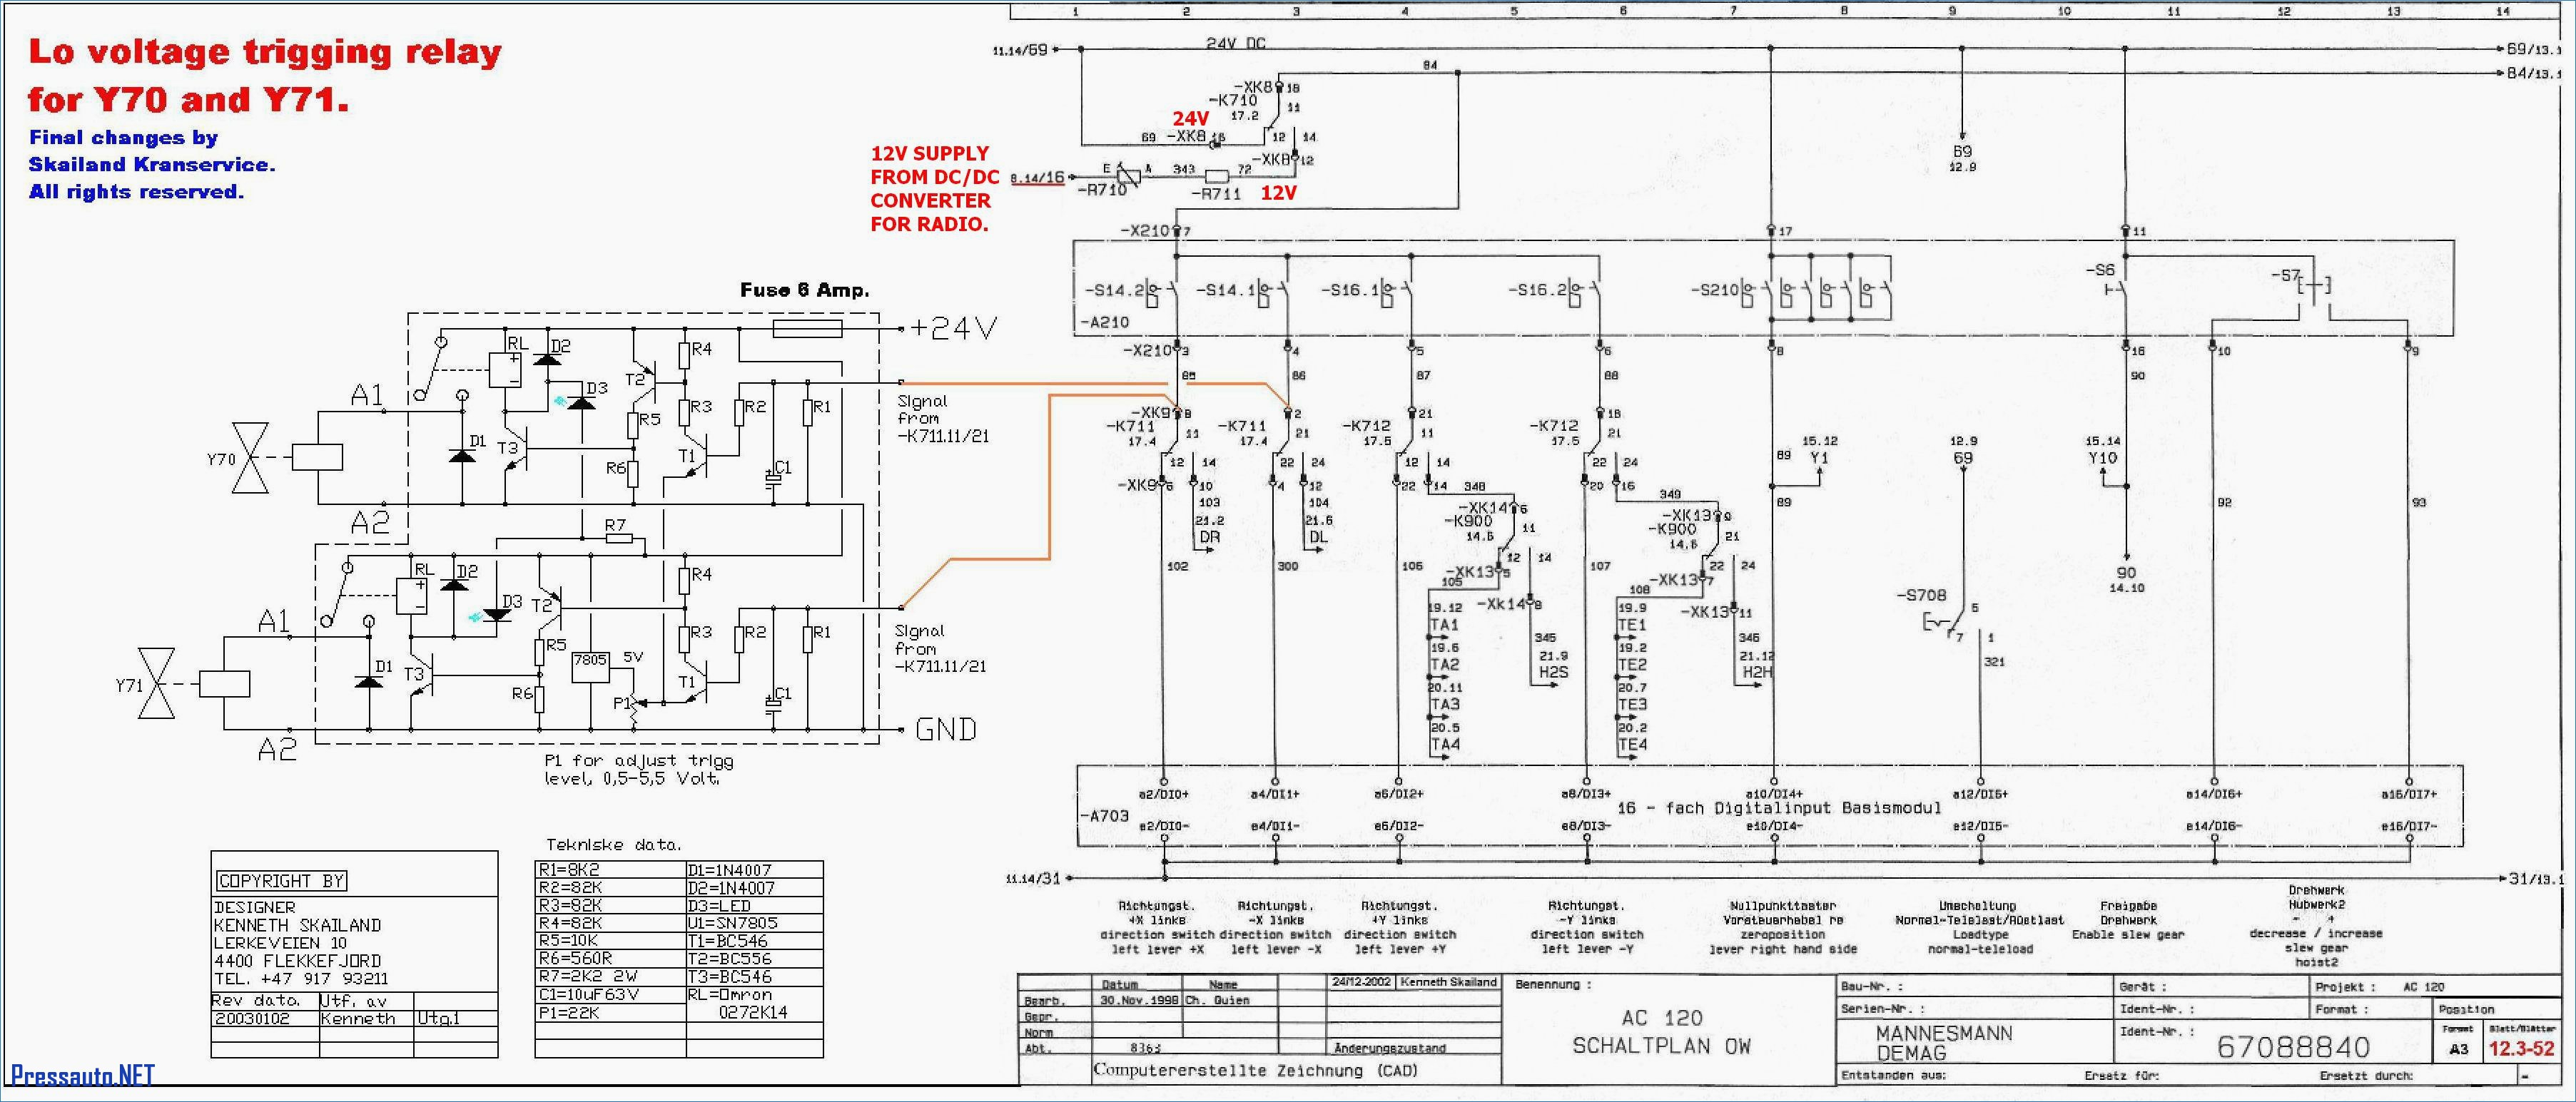 Abb Motor Starters Control Wiring Diagram - Rax.bibliofem.nl • on voltage wiring diagrams, ground fault wiring diagrams, fire detection wiring diagrams, phase wiring diagrams,